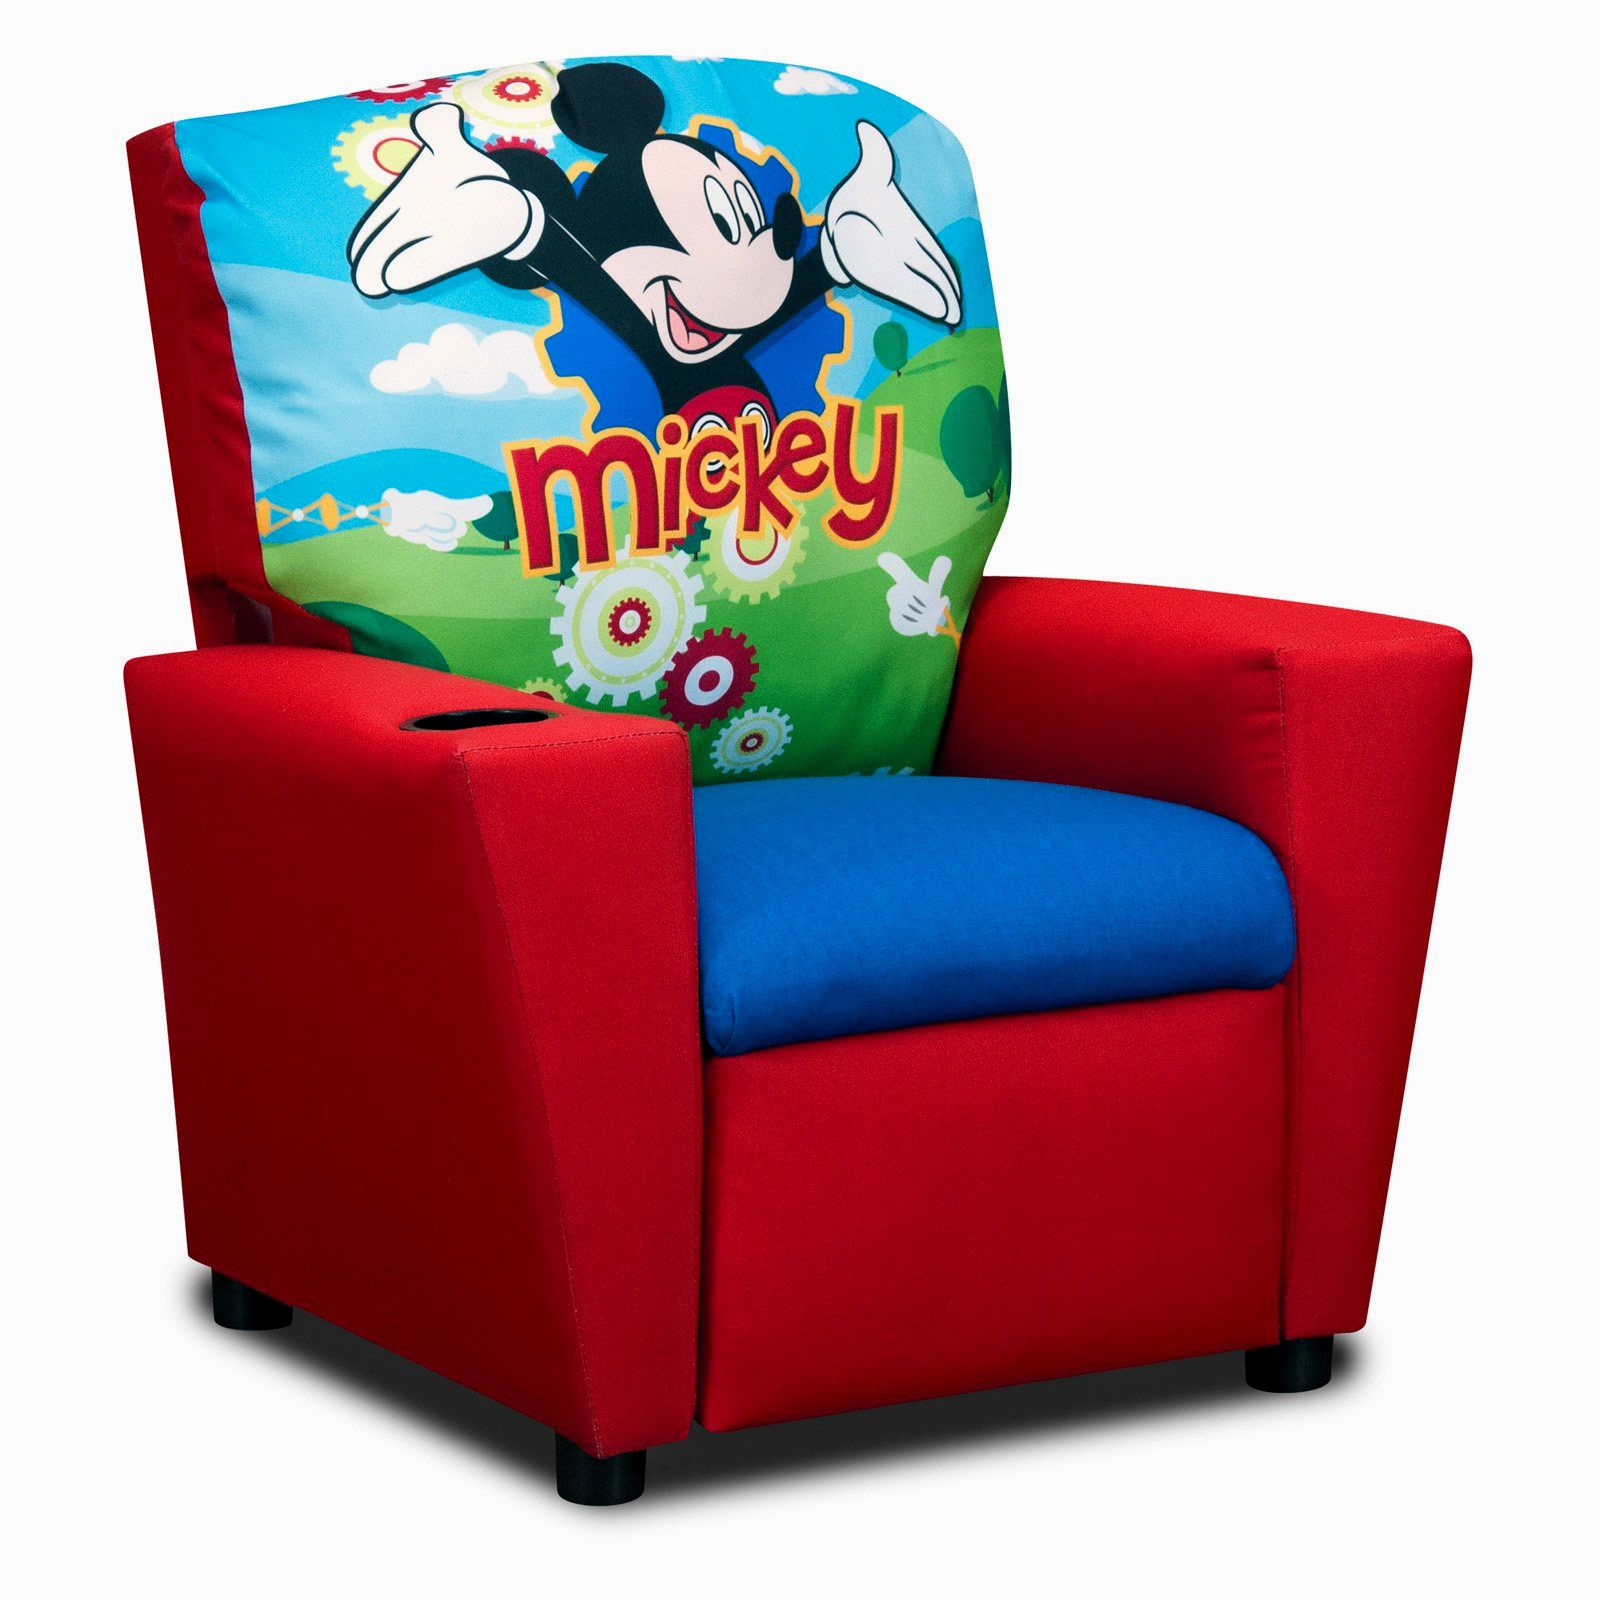 top mickey mouse sofa gallery-Incredible Mickey Mouse sofa Ideas